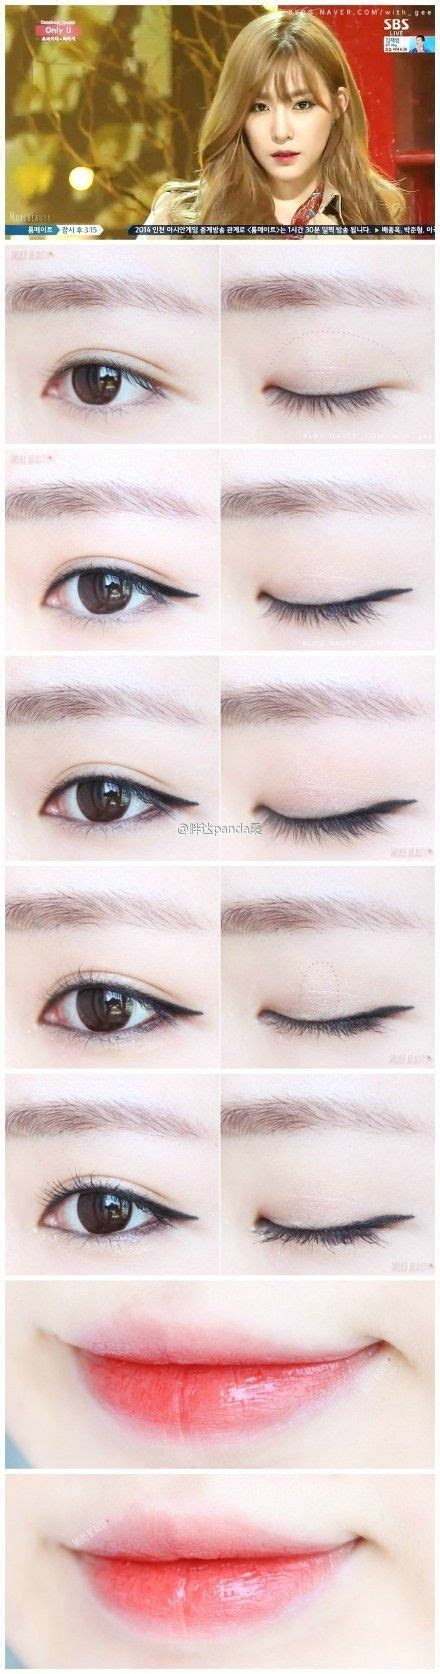 tutorial make up korea mp4 korean make up makeup pinterest makeup tutorials